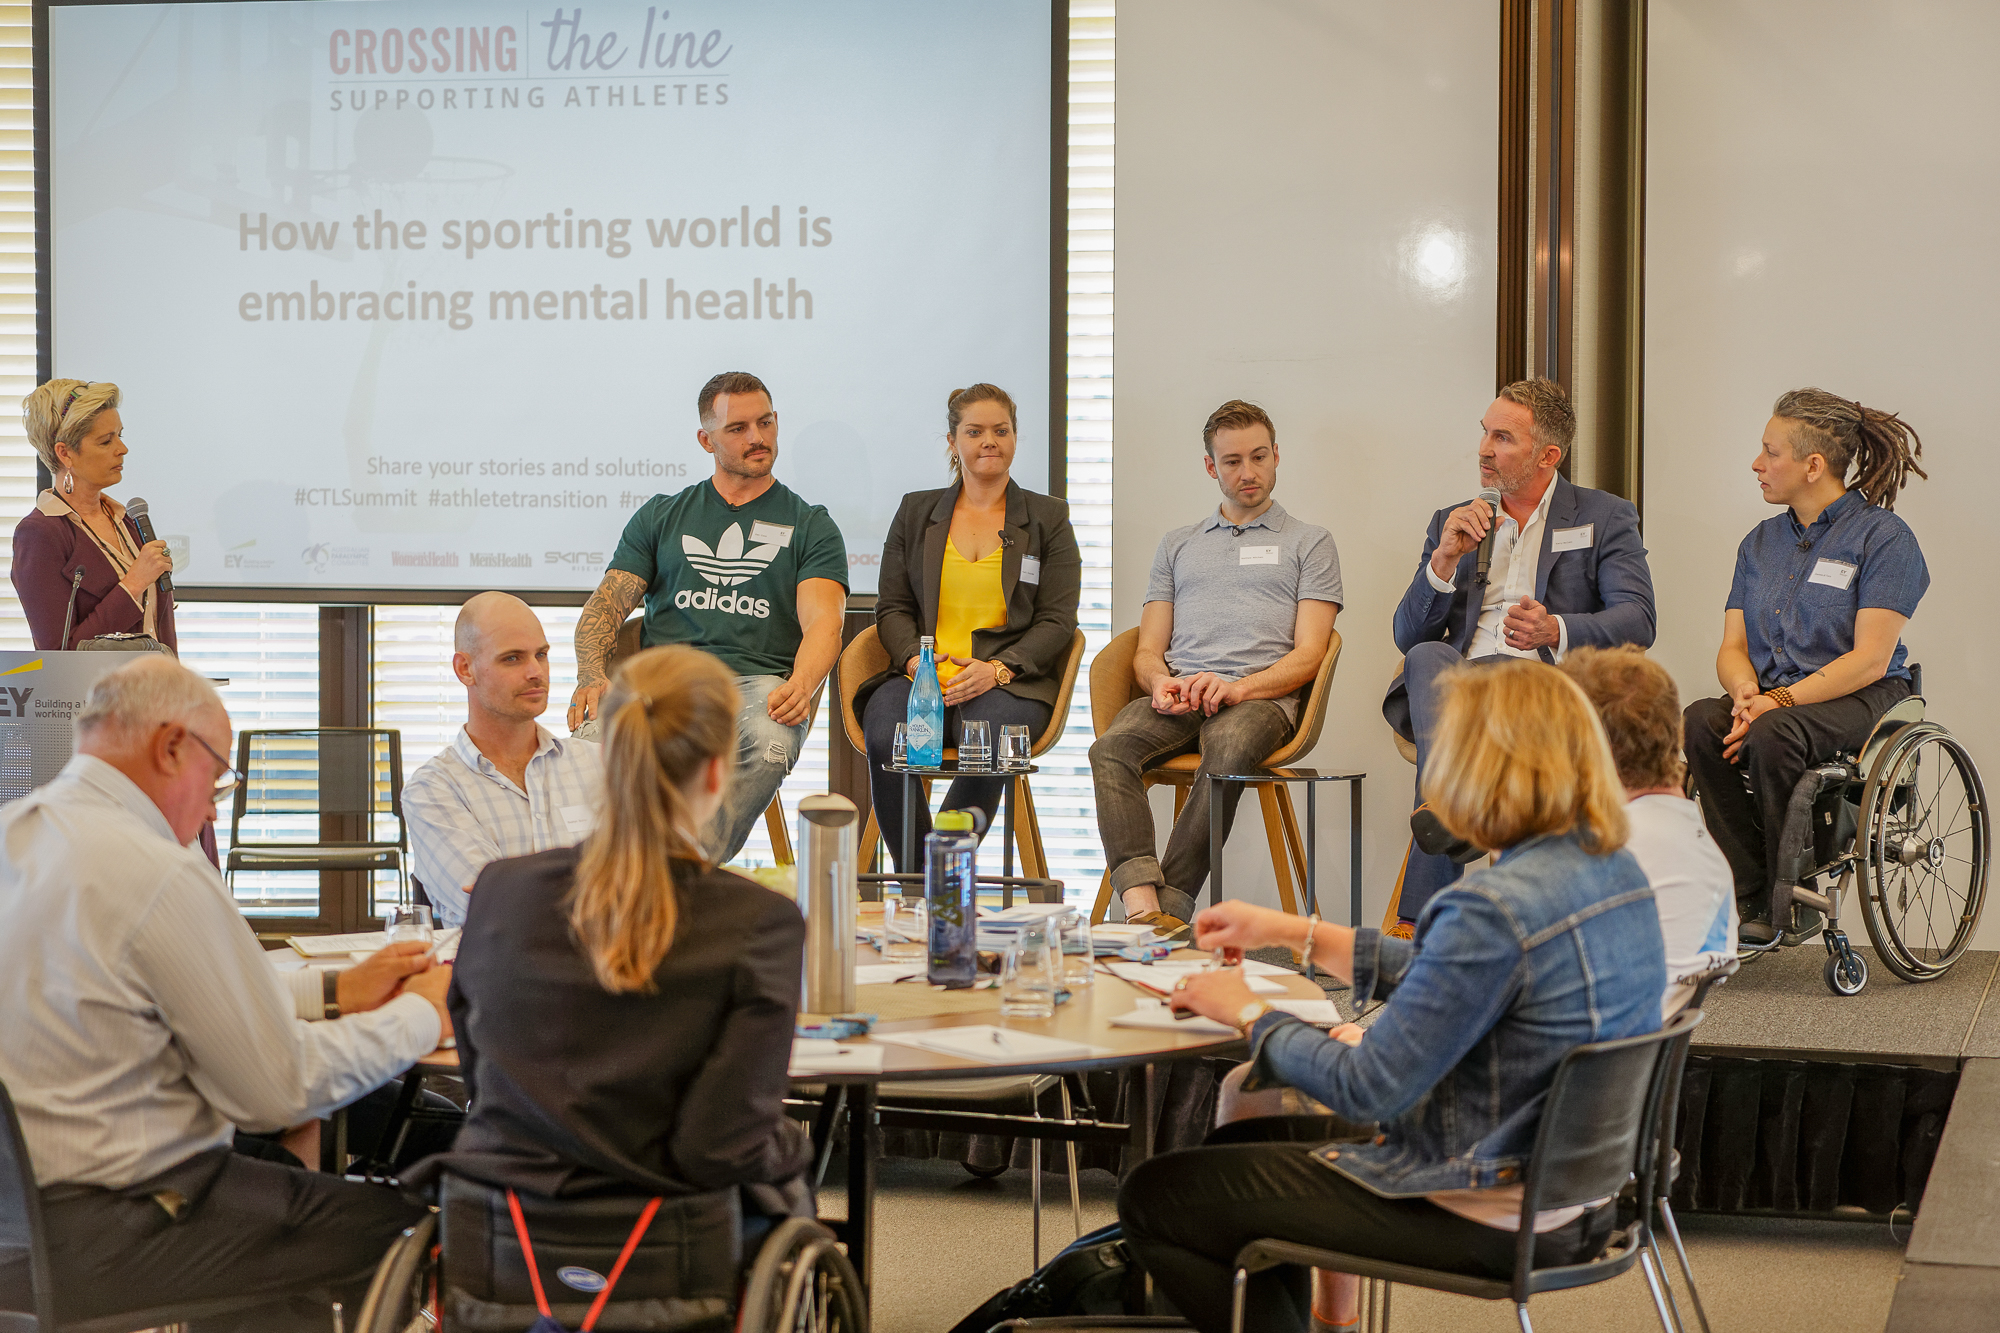 Crossing The Line Summit panel: How the sporting world is embracing mental health